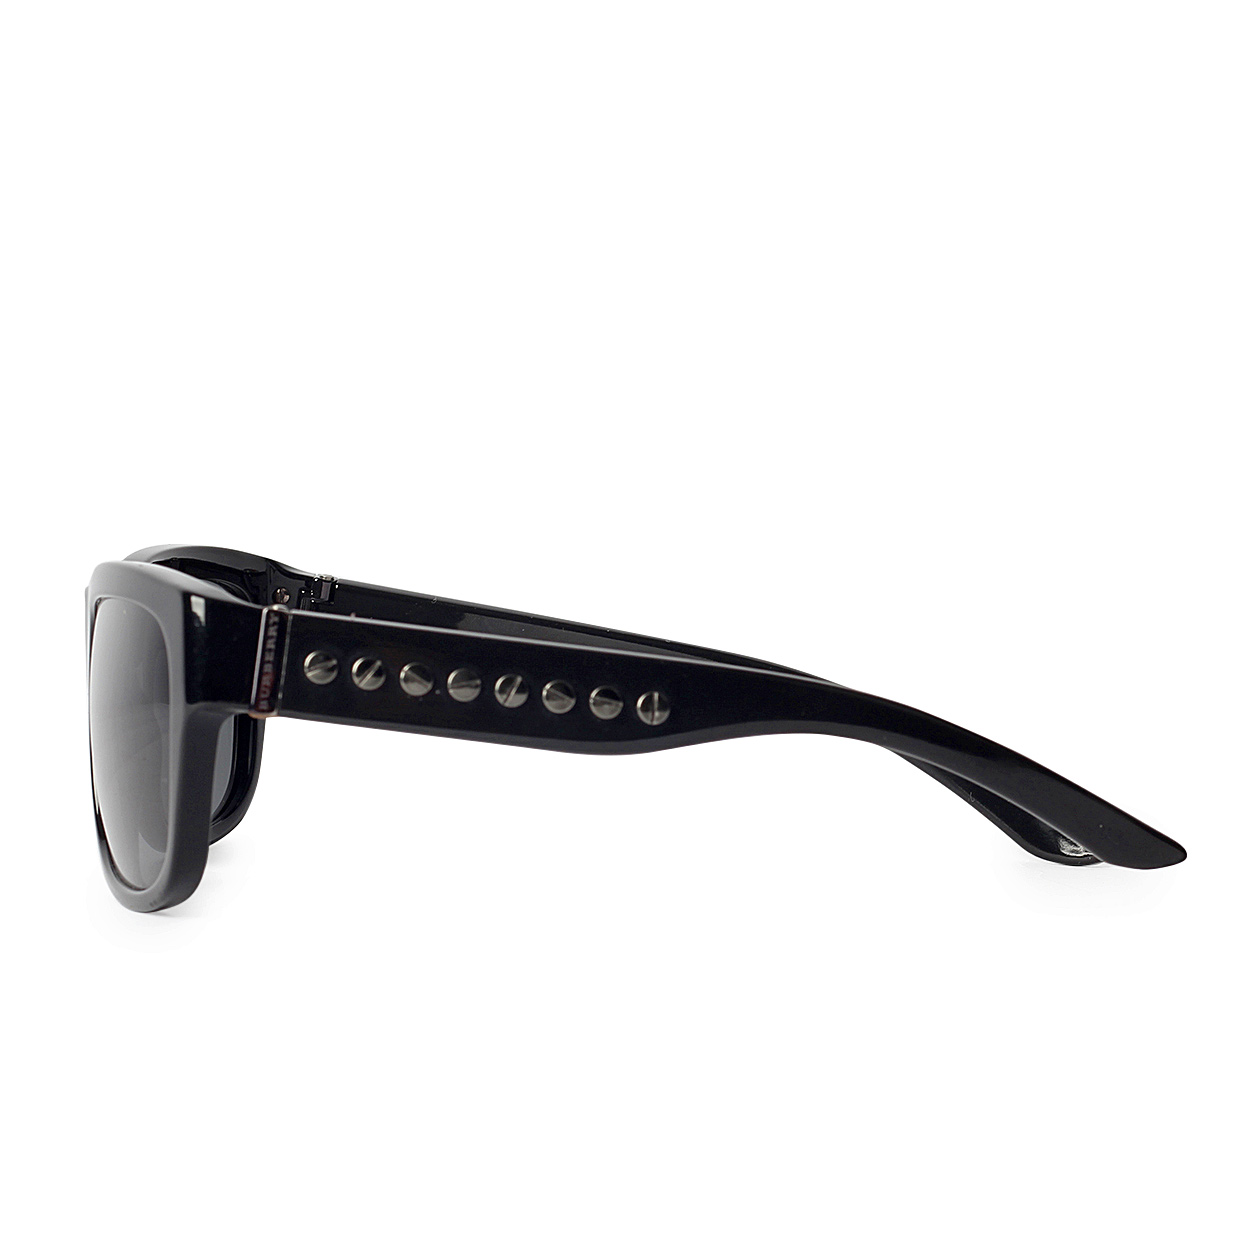 BURBERRY Black Small-frame Sunglasses B4094 - Luxity